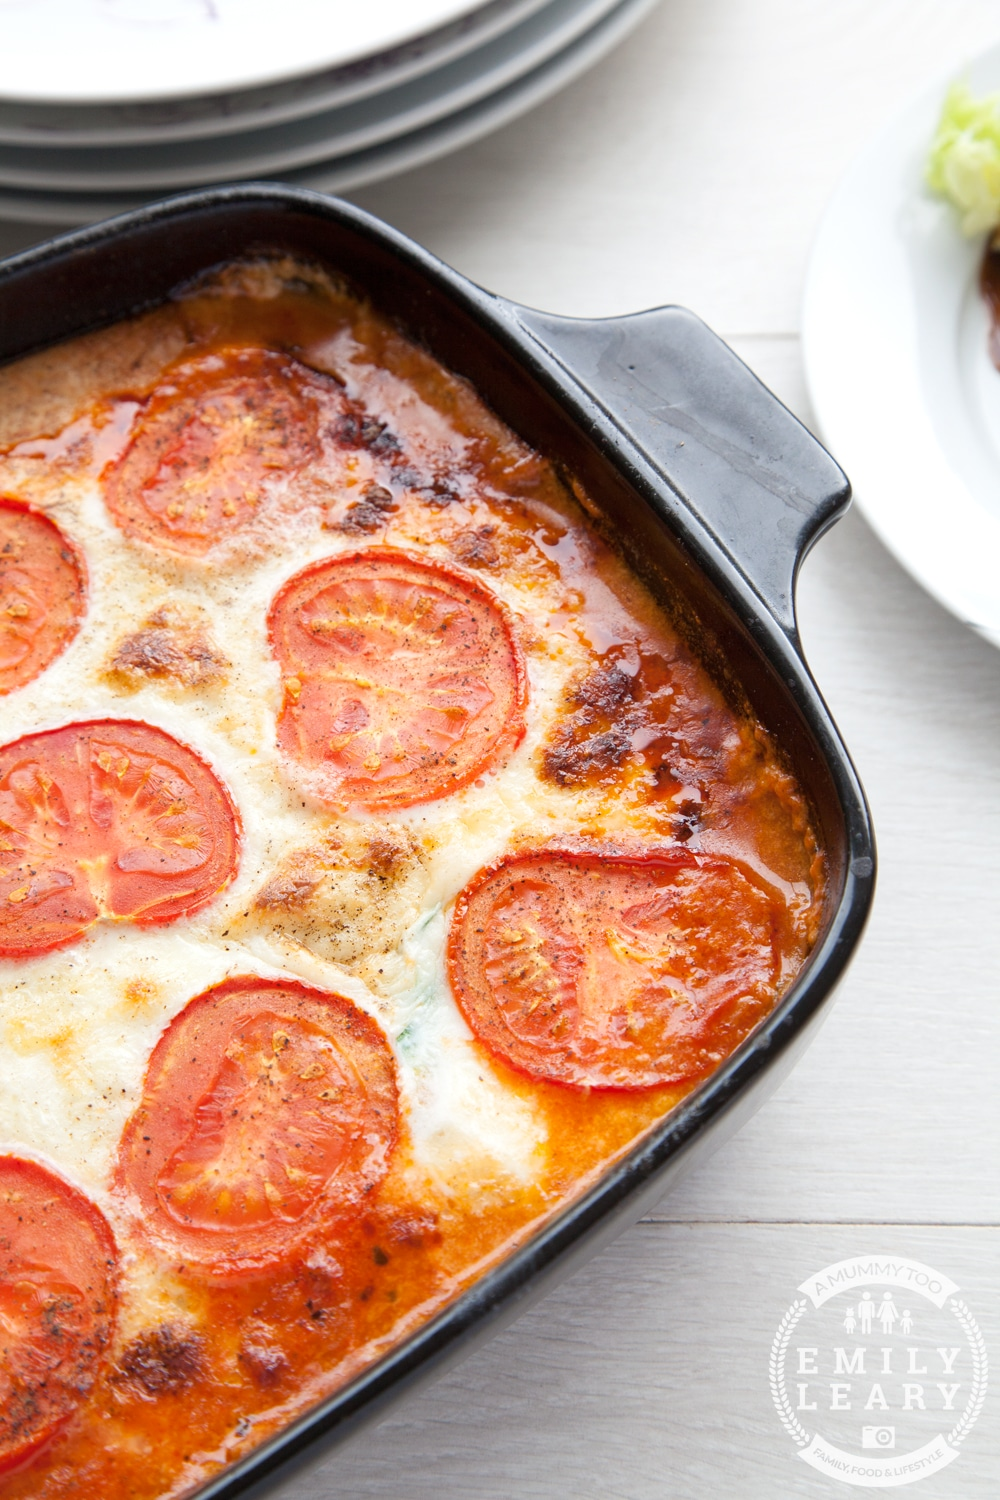 Tomato and courgette mozzarella bake - low carb, suitable for vegetarians and easy to make gluten free